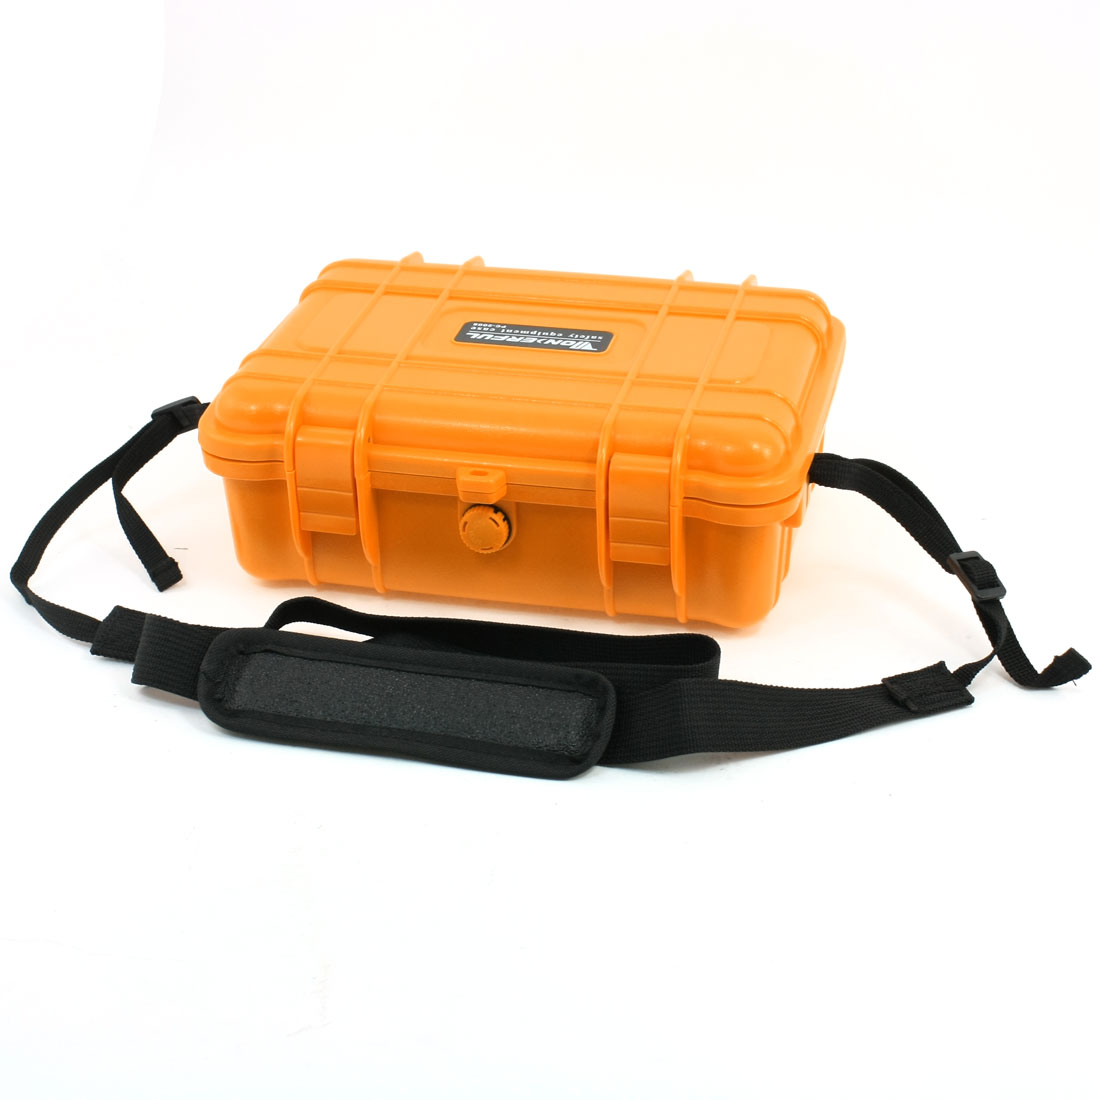 Photographic Foam Lining Safety Box Case Orange w Shoulder Strap